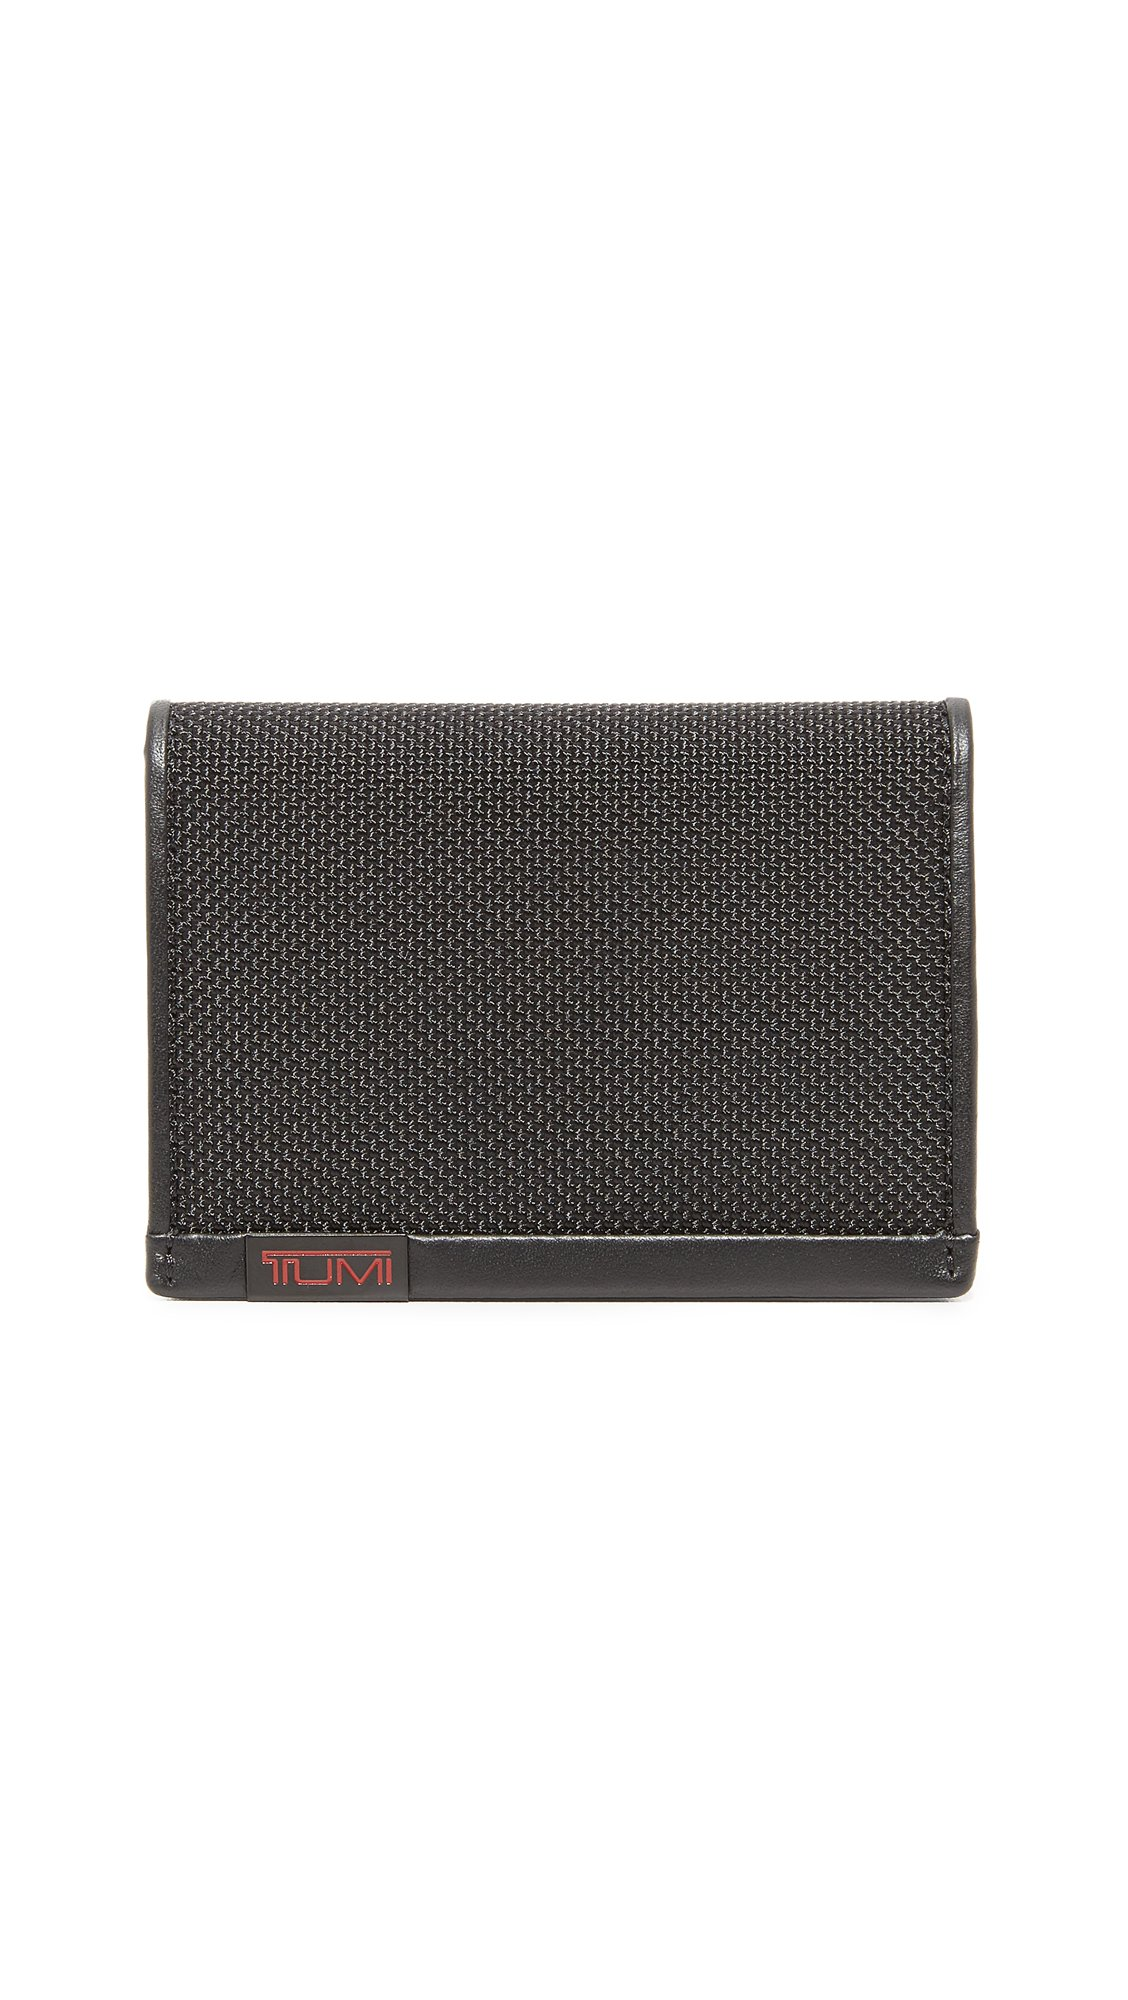 Tumi Alpha Gusseted Card Case with ID,Black,one size